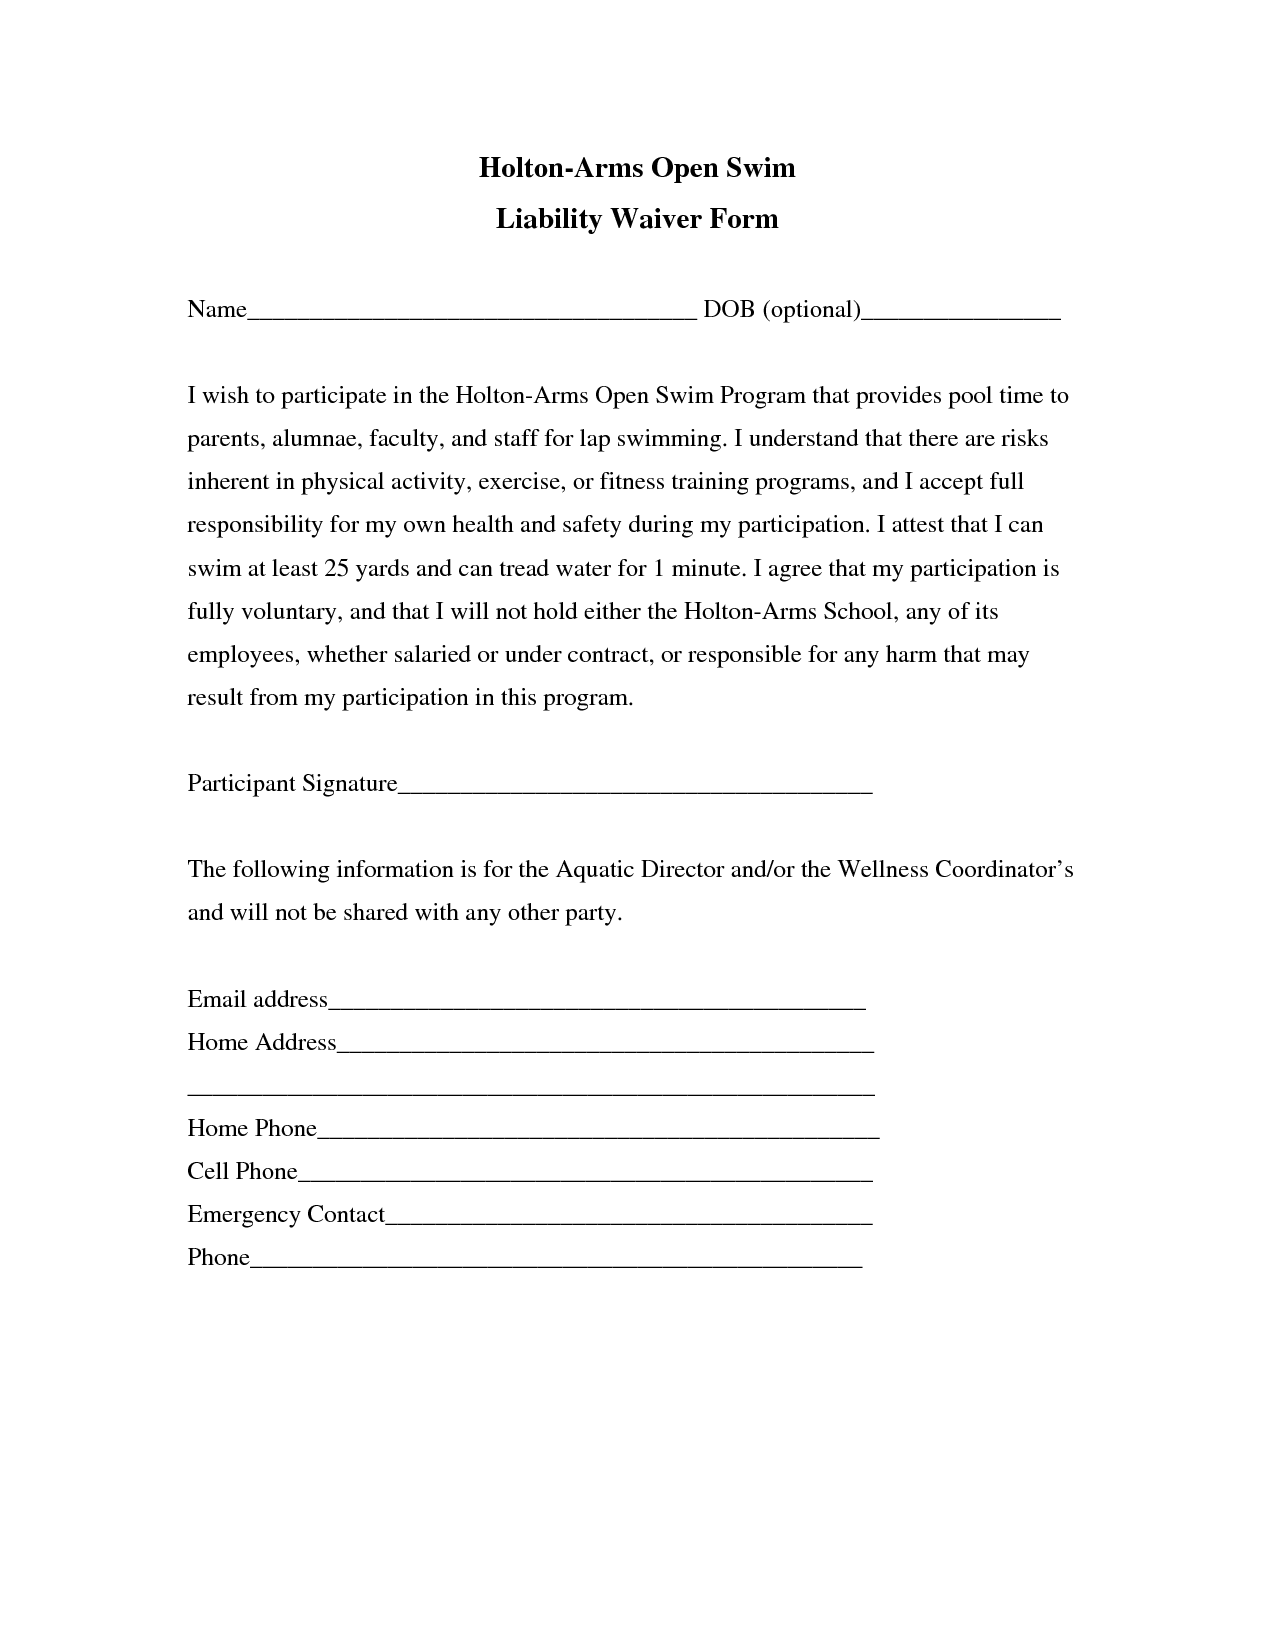 Printable Insurance Waiver Form Template